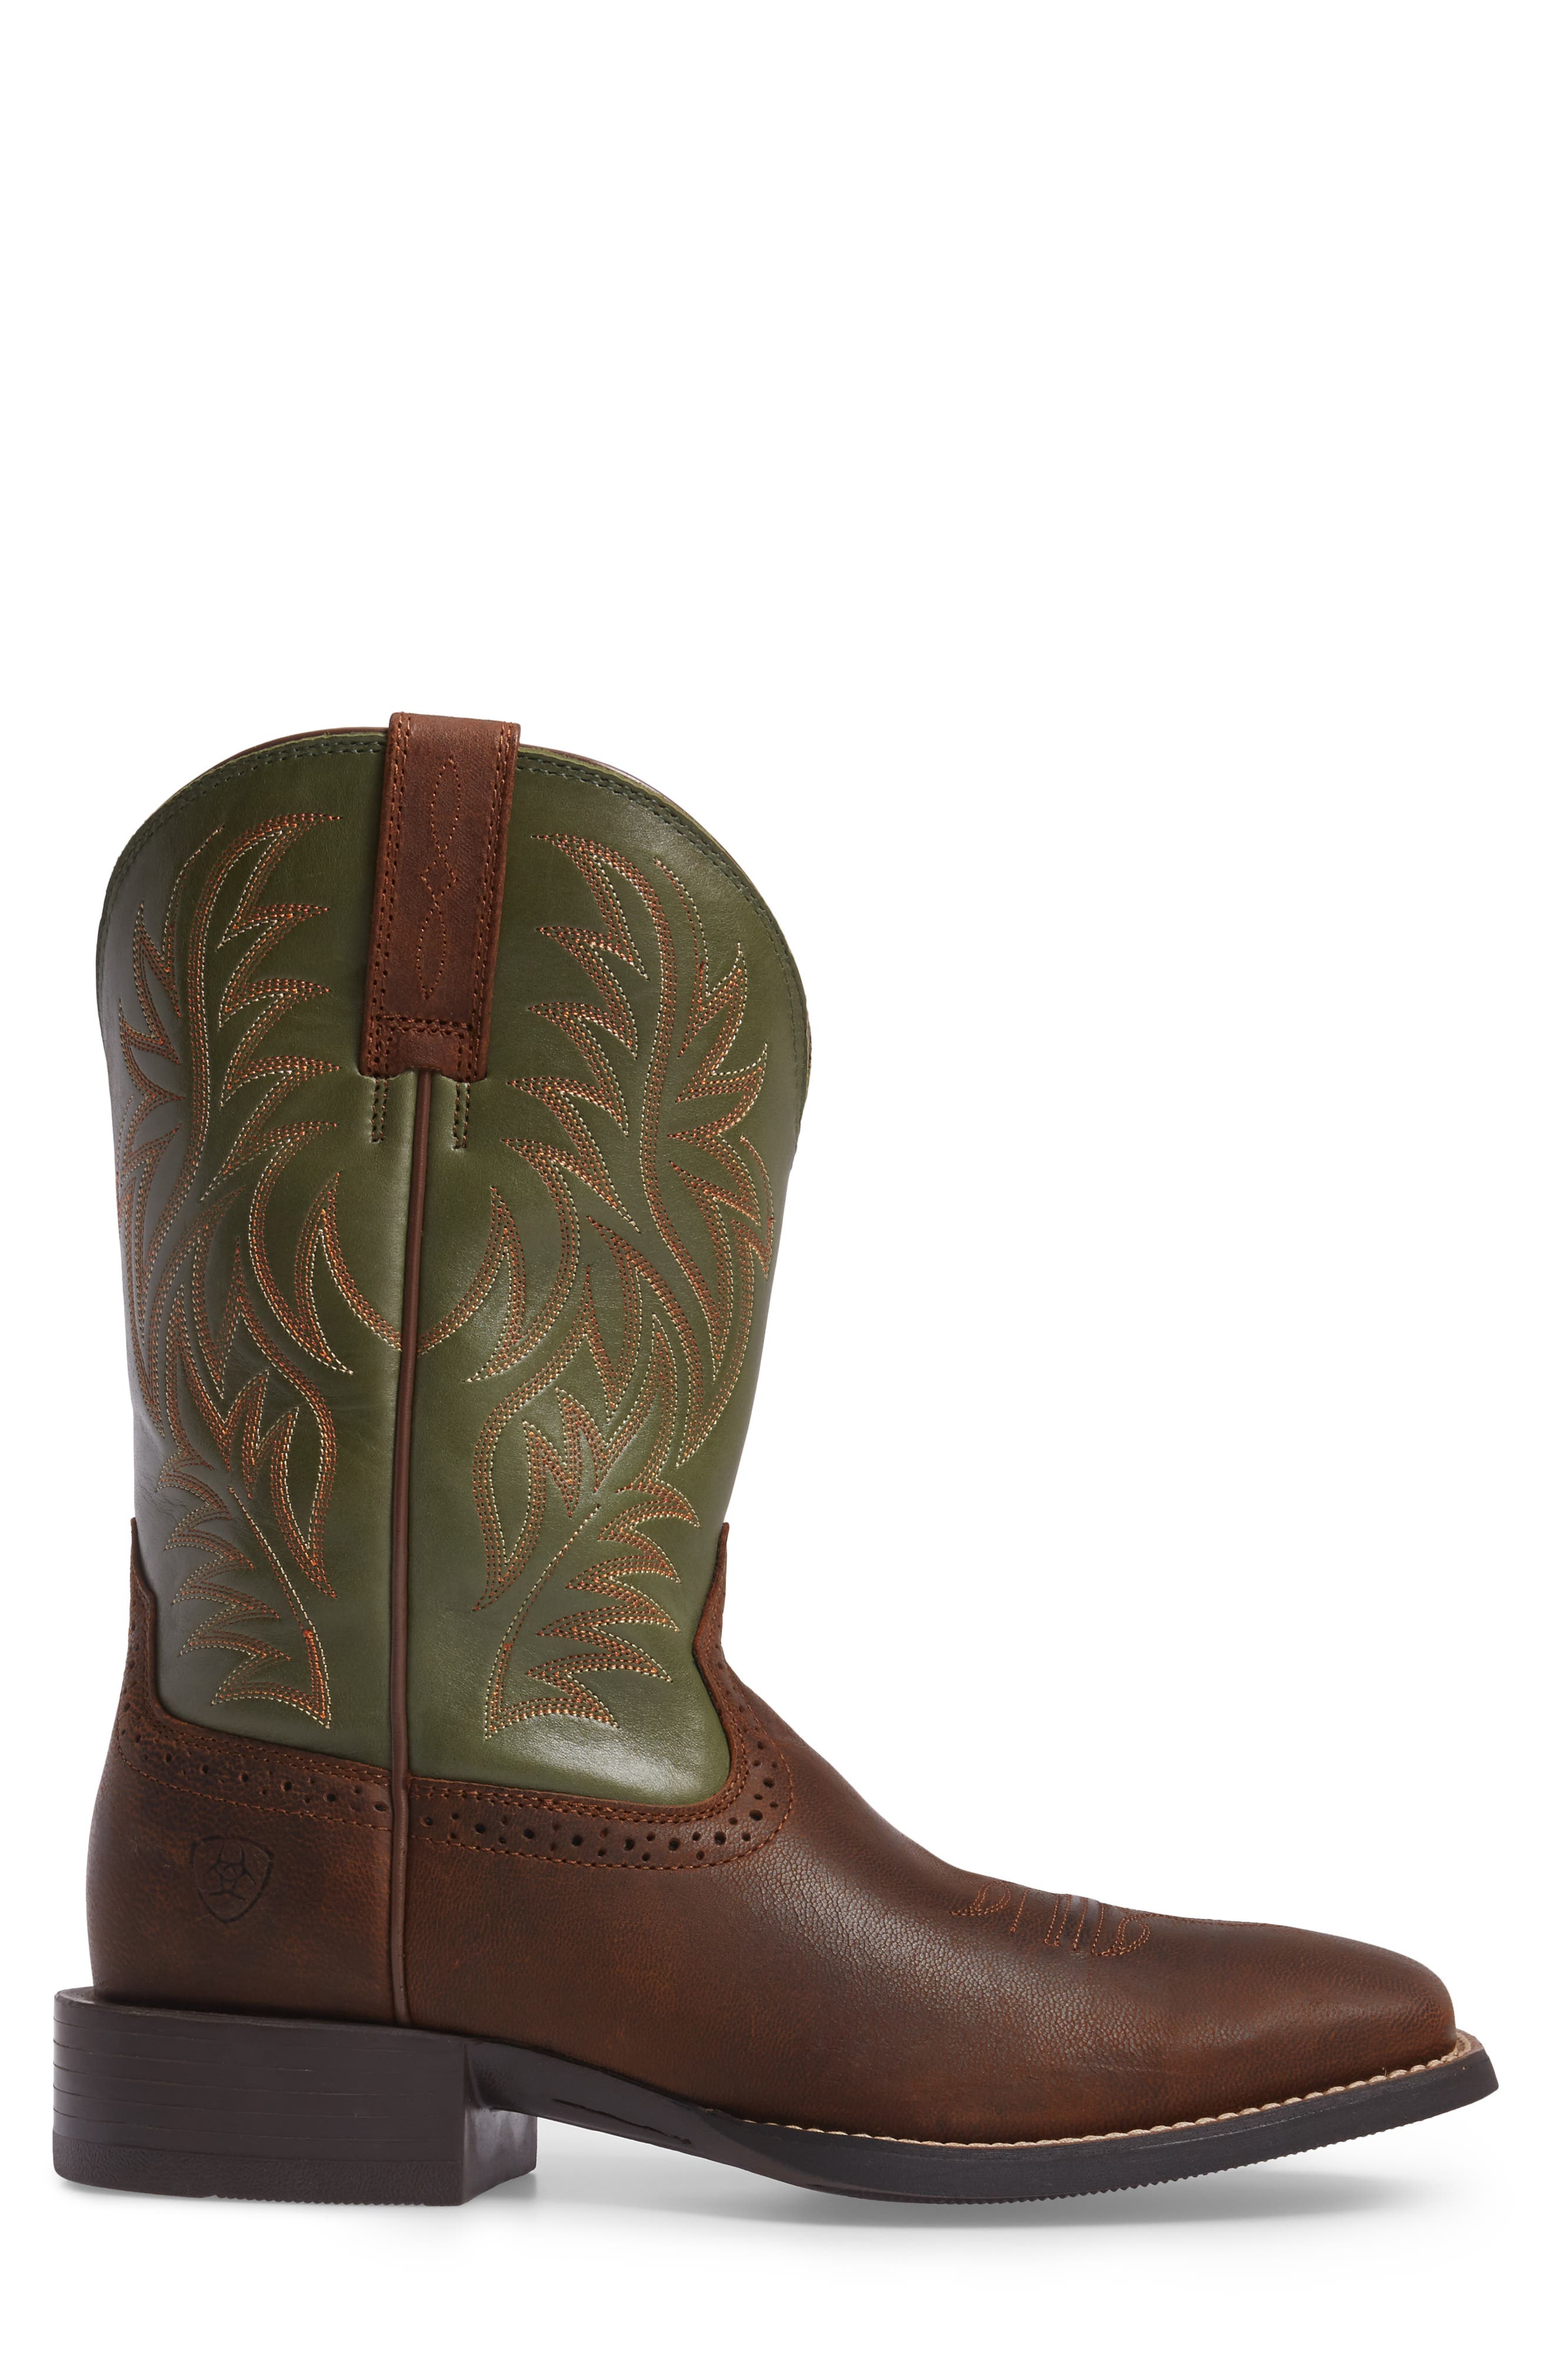 'Sport Western' Cowboy Boot,                             Alternate thumbnail 2, color,                             Tan/ Pesto